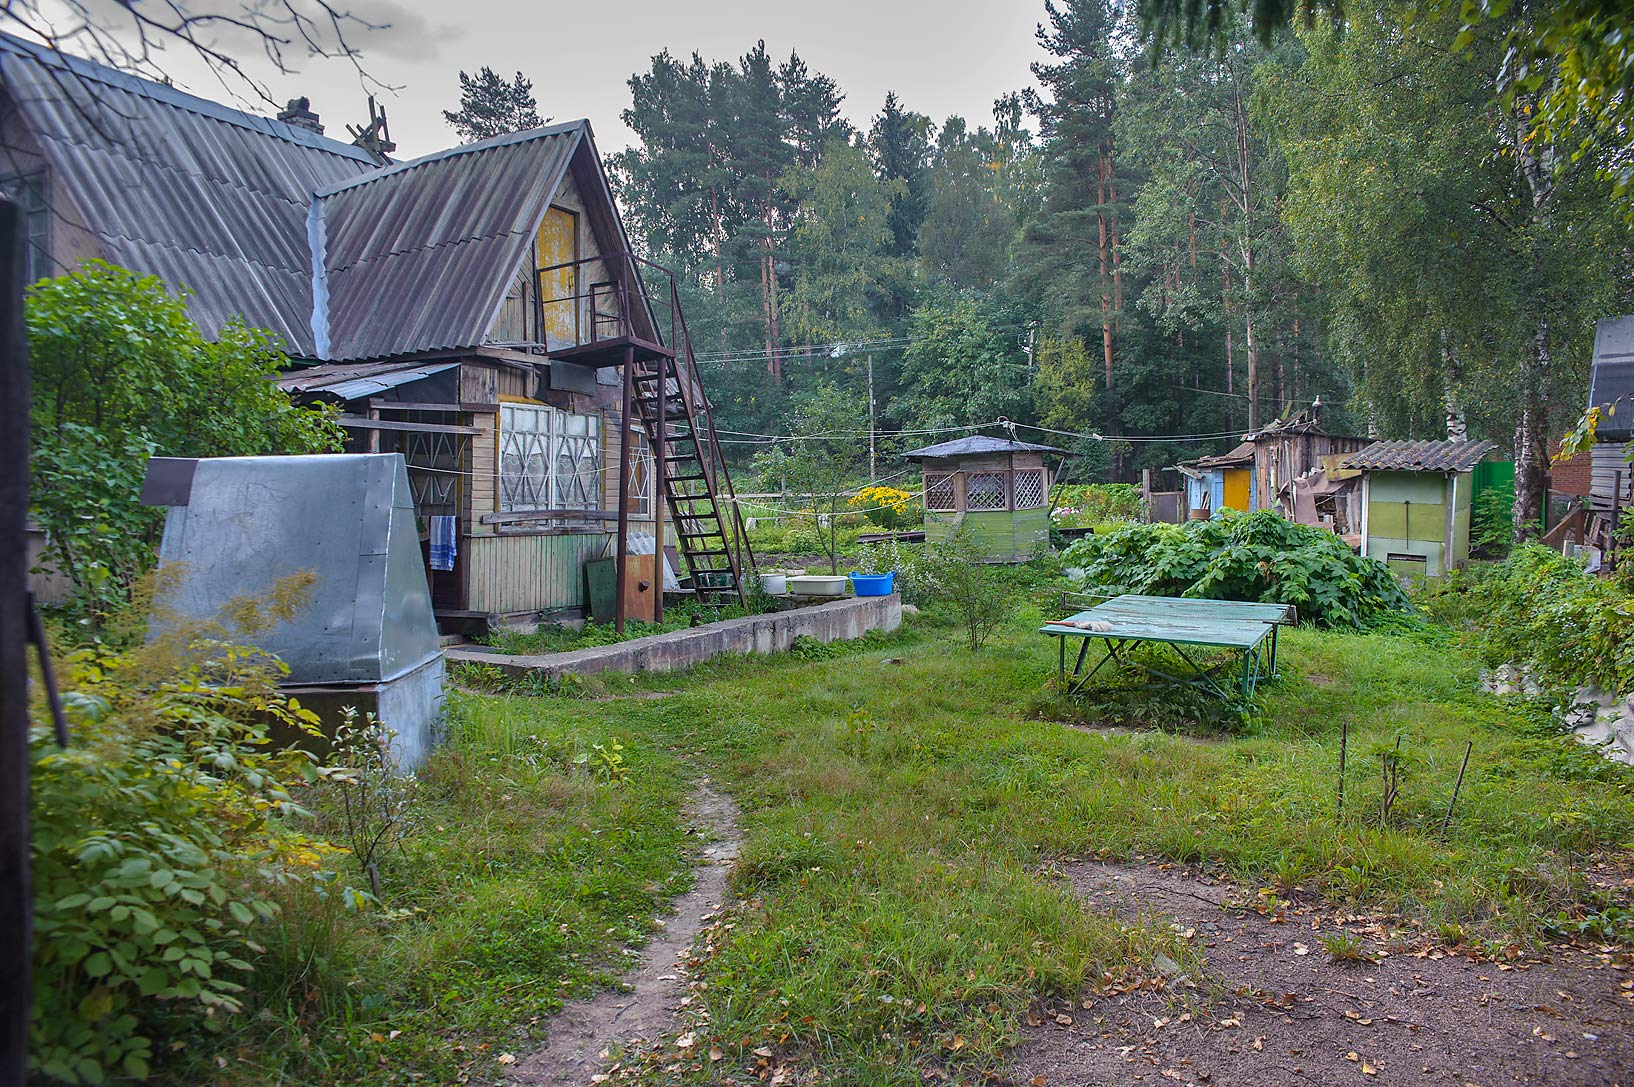 Dacha (summer house) at Borovaya St. in Toksovo, suburb of St.Petersburg. Russia